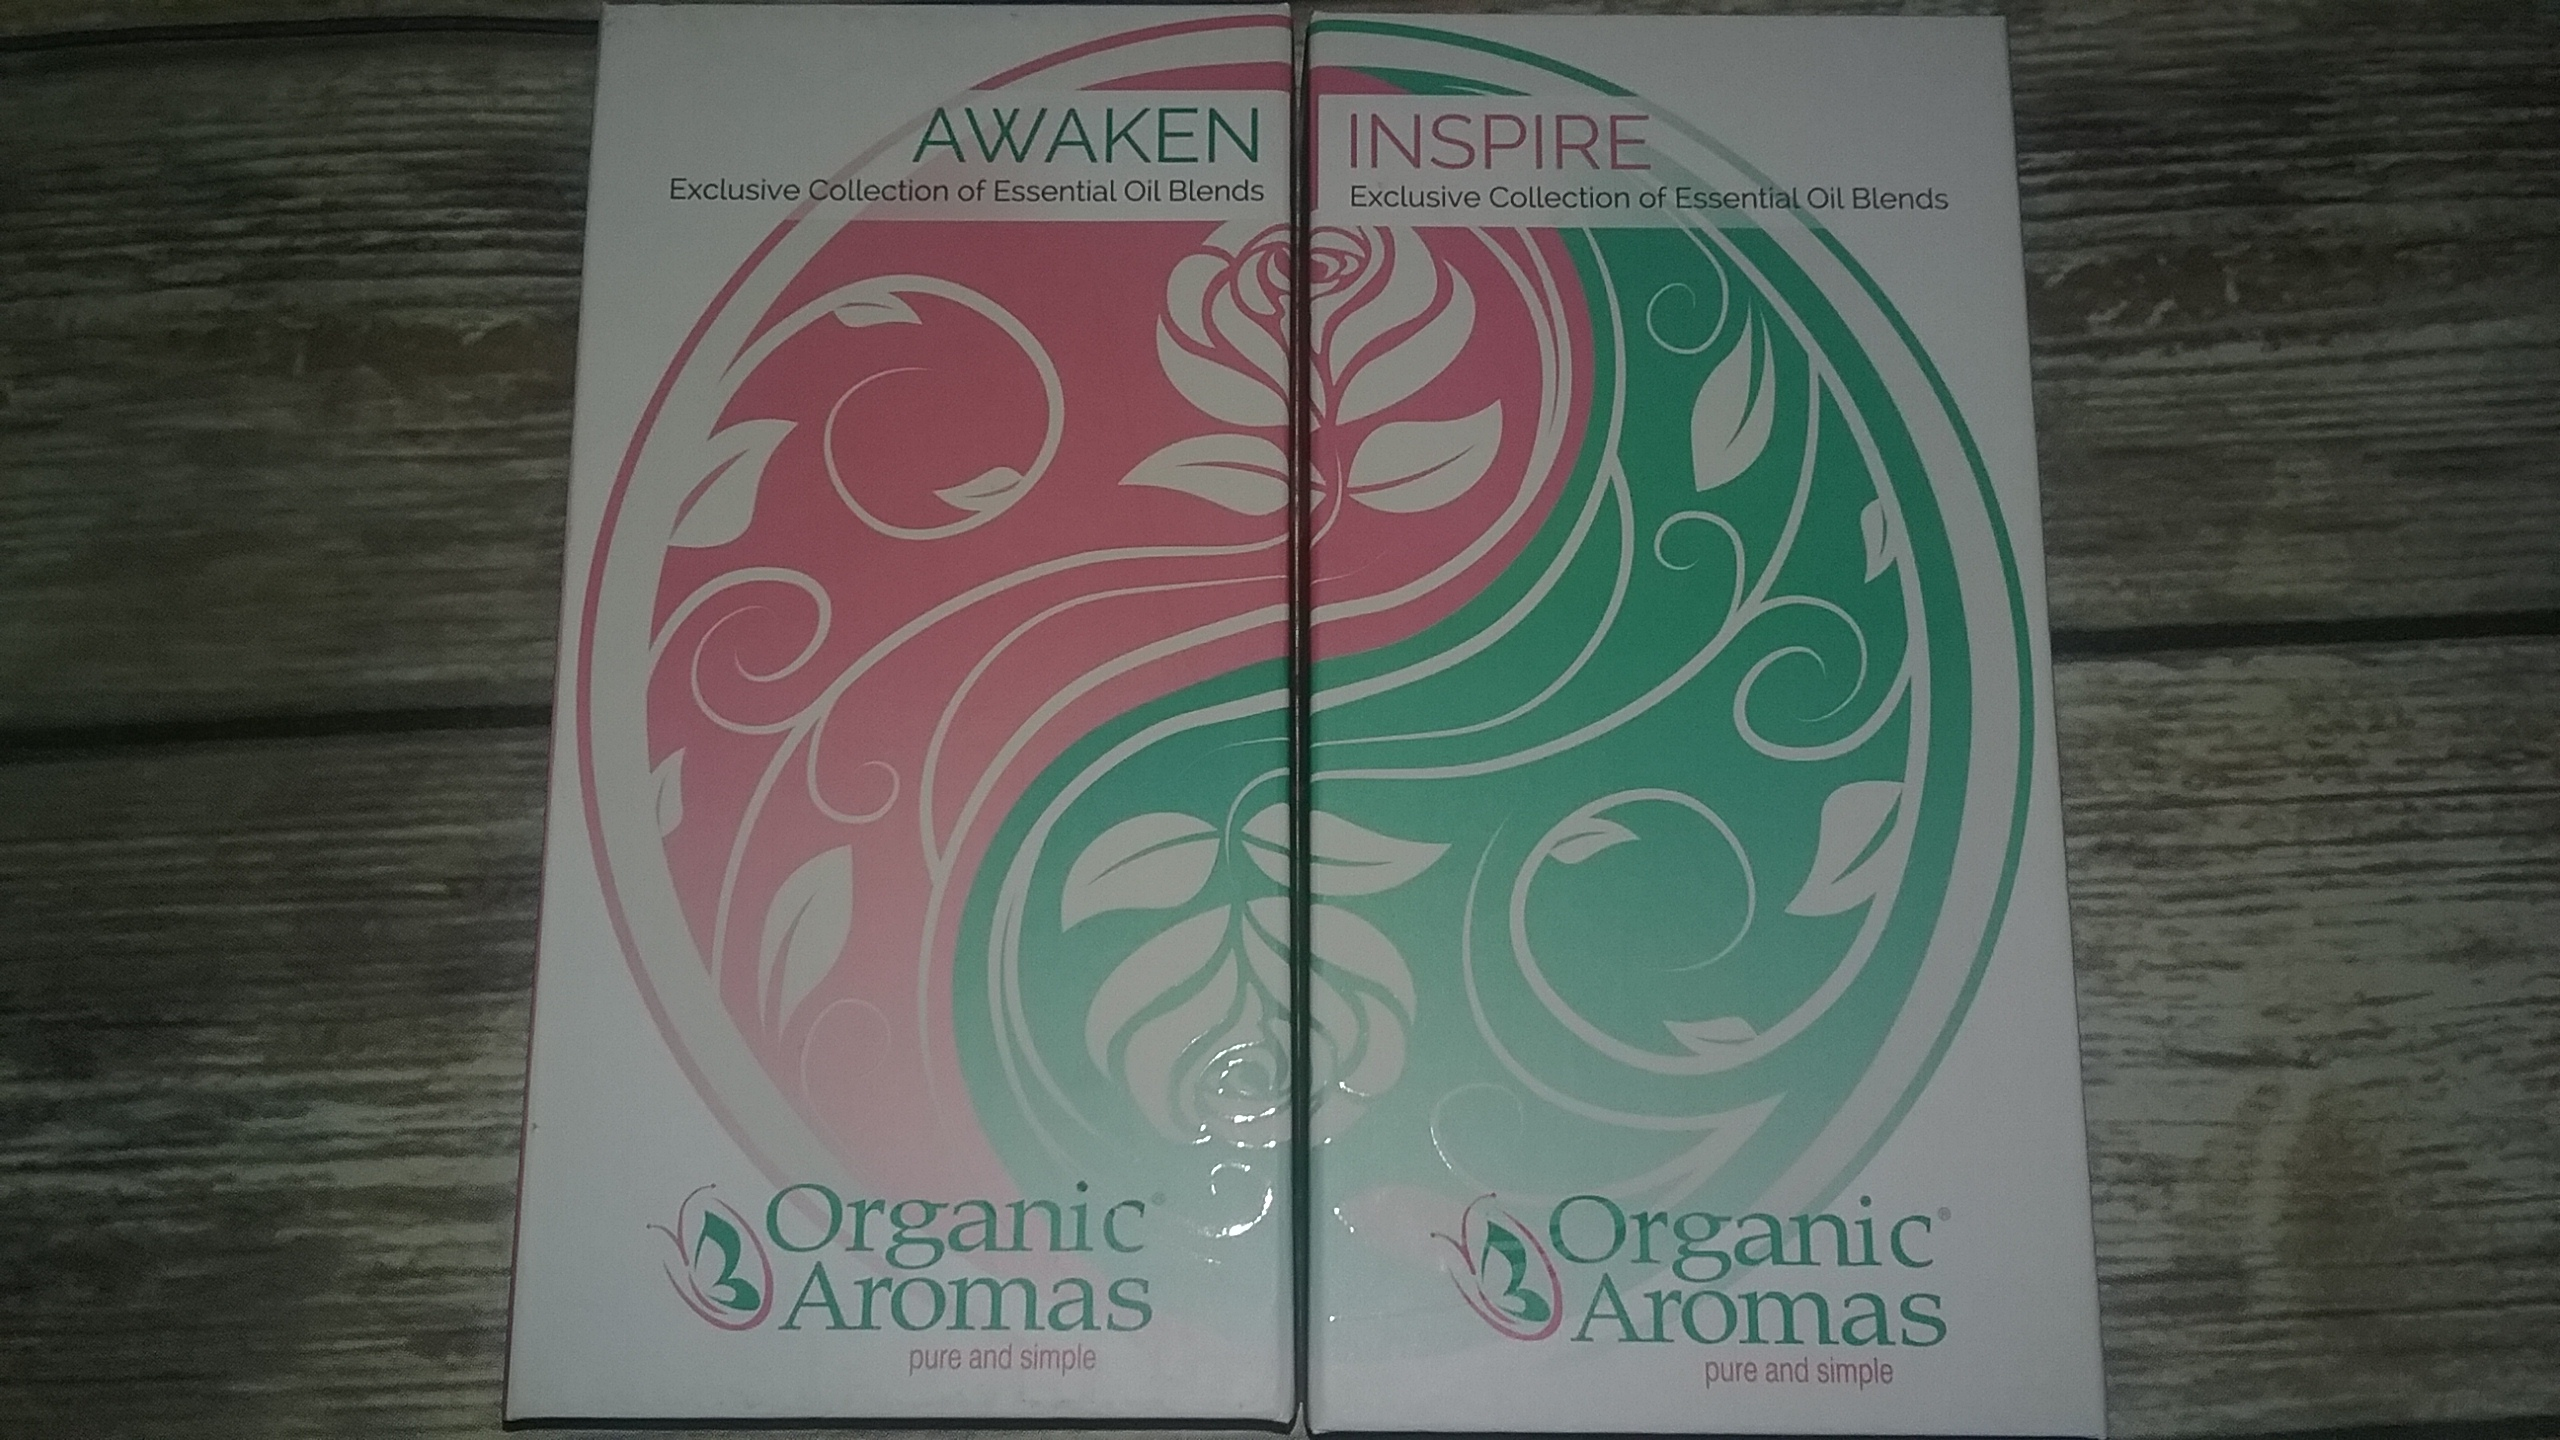 Love At First Smell, Organic Aromas Elements Premium Essential Oil Blends Collection! @OrganicAromas